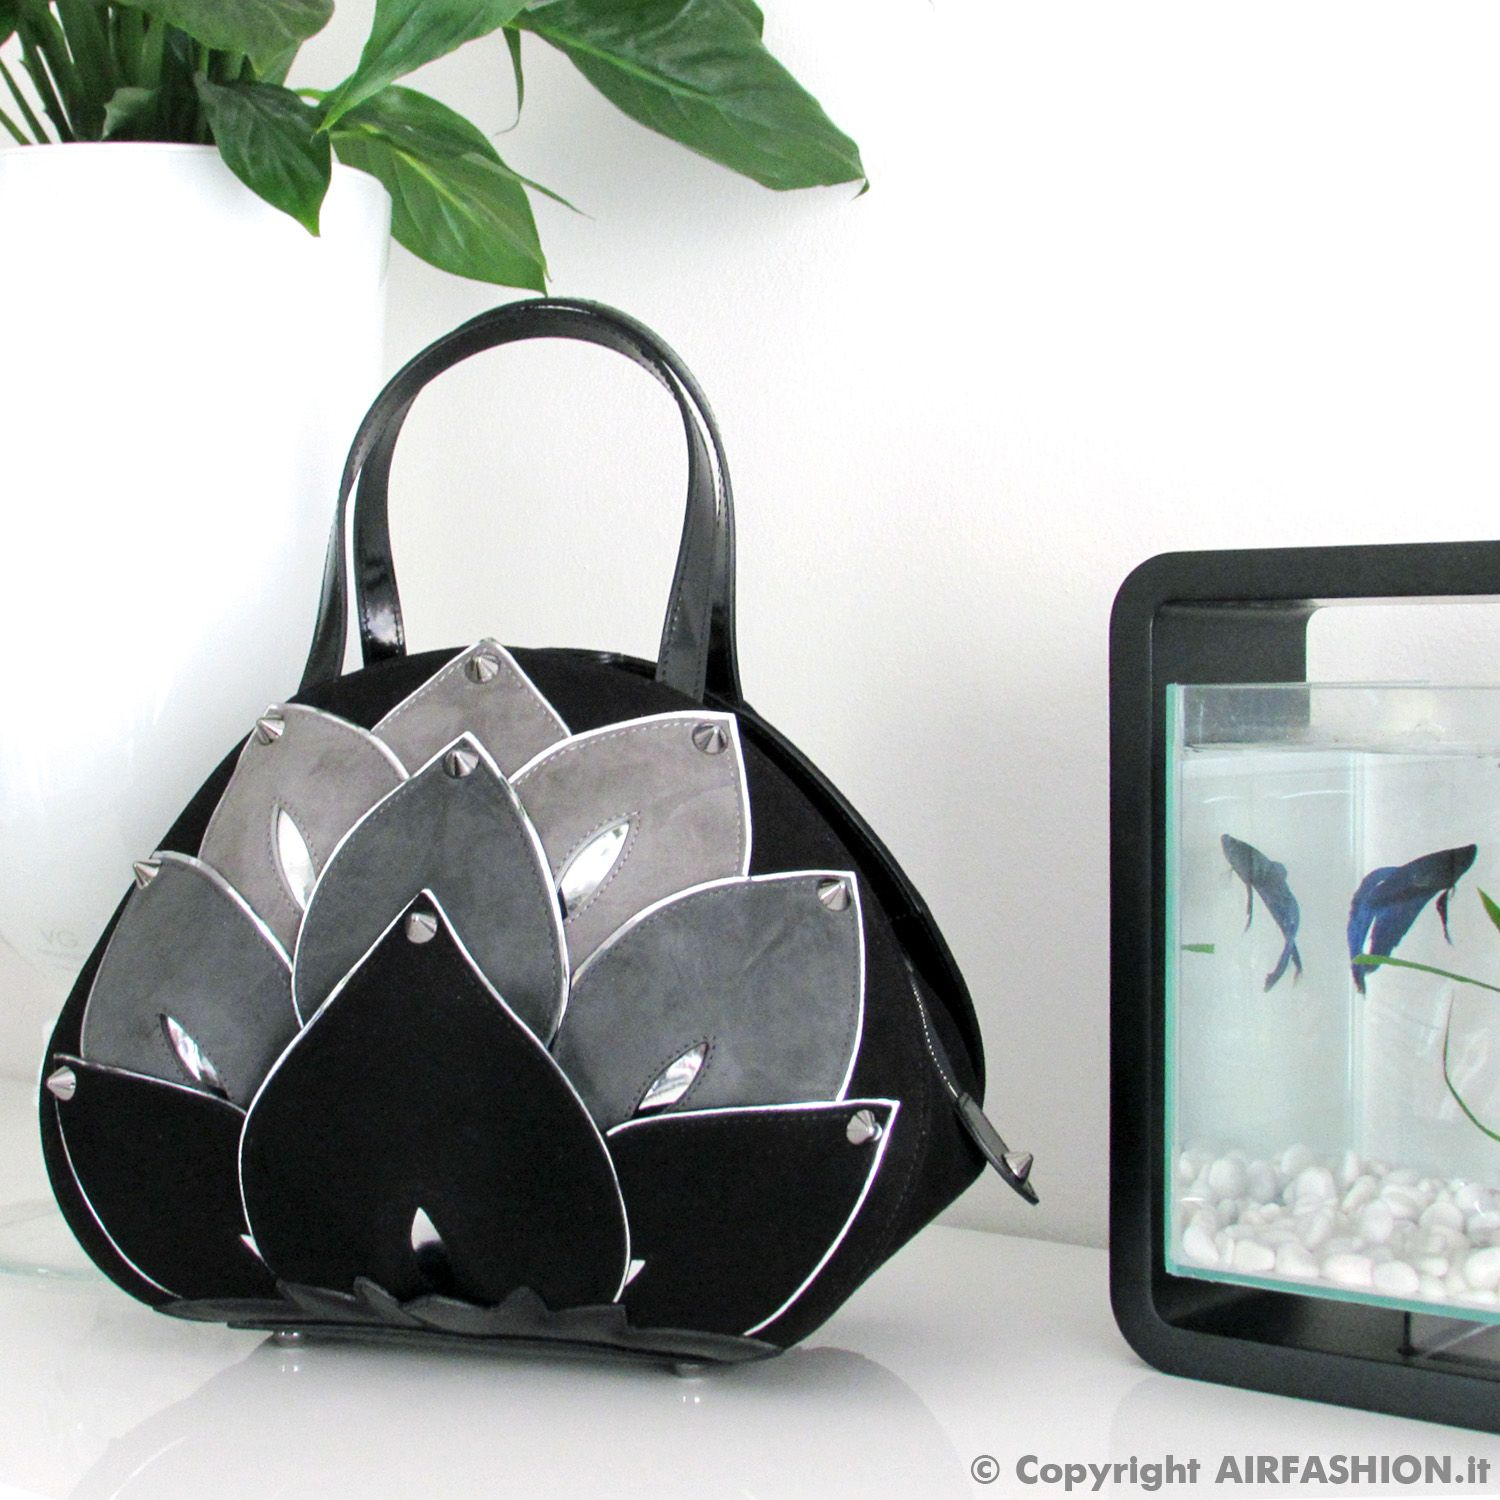 Enjoy the harmony with nature with the Braccialini LOTUS handbag. New fall/winter collection 2016/2017.   http://www.airfashion.it/071815191158/bags-leather/artistic-bags/1/braccialini/b11181_leather_handbag_lotus_flower_theme_fw_2016-2017.html